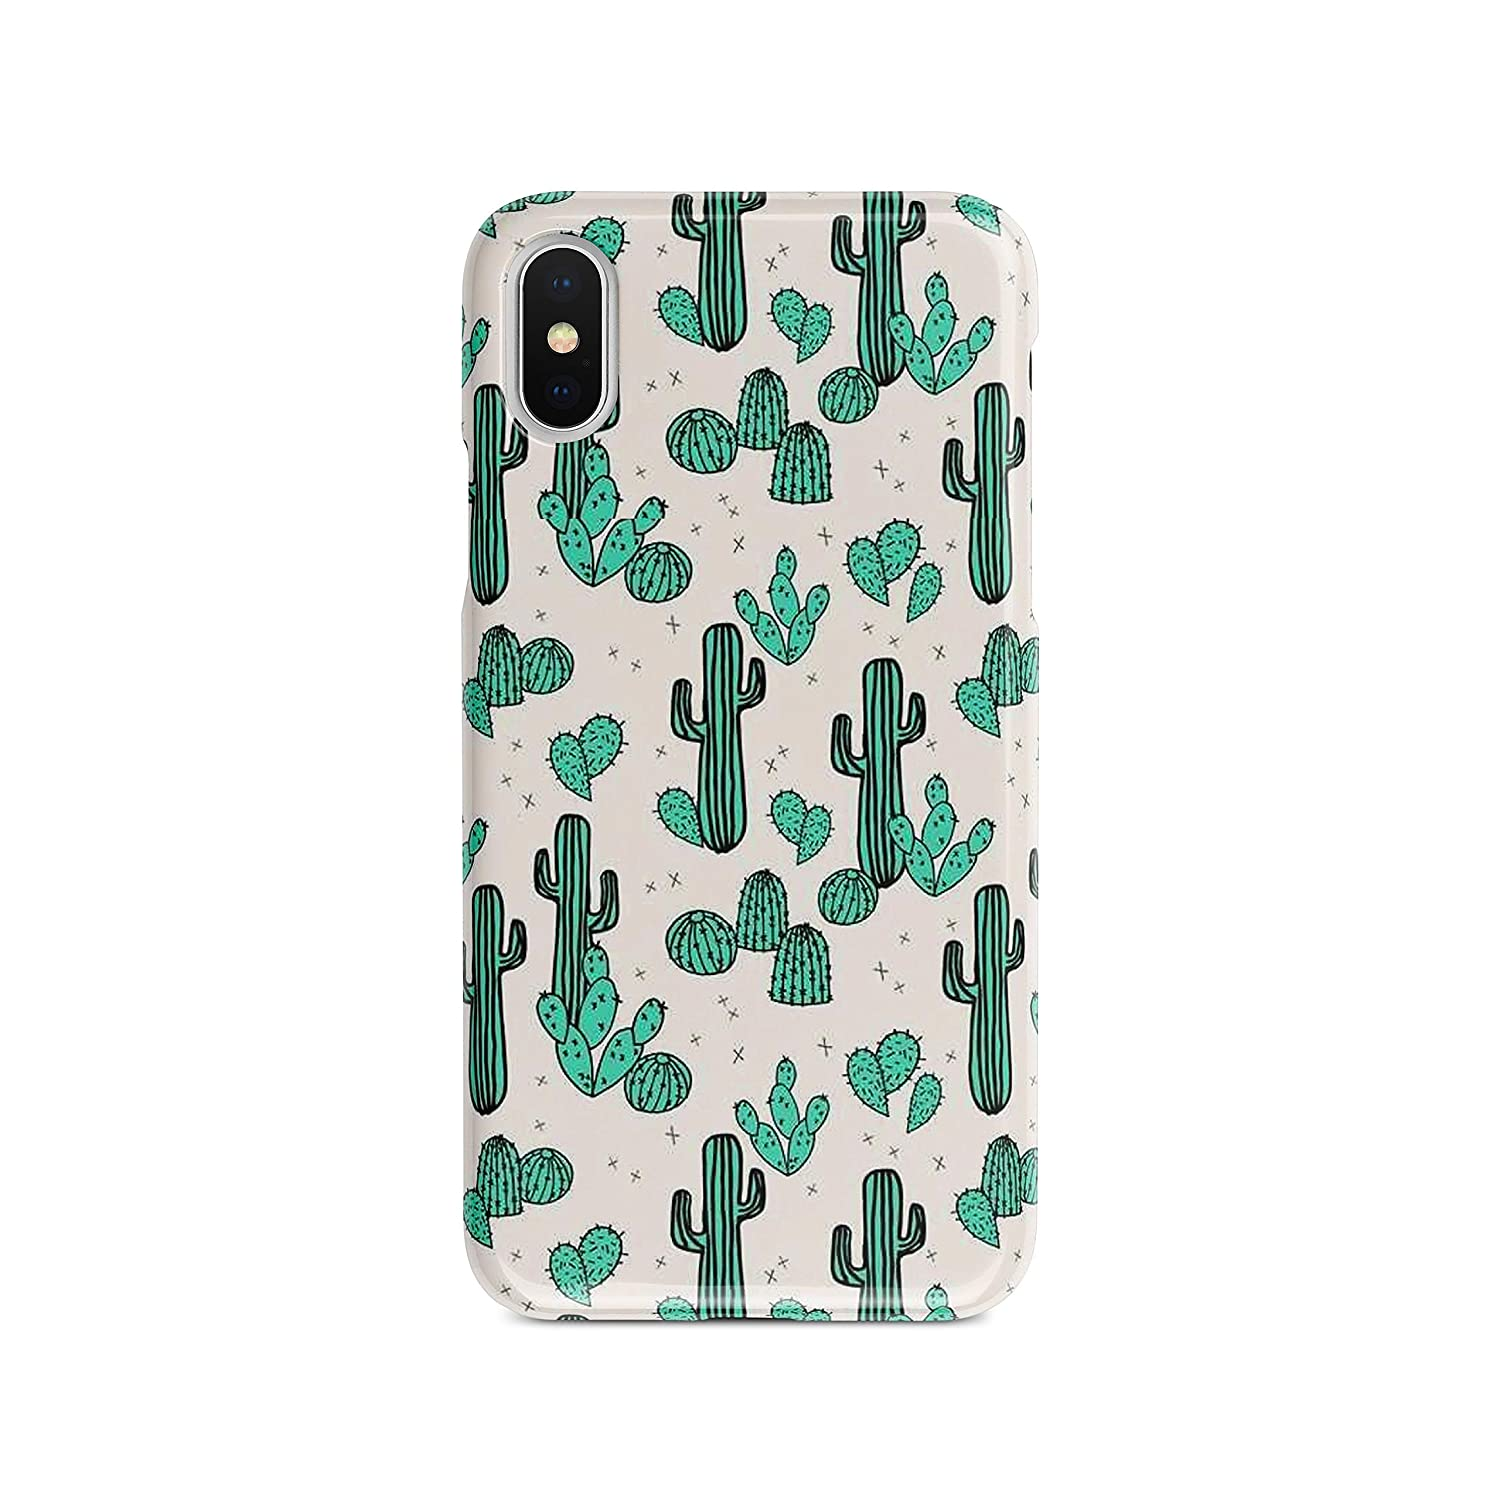 Cacti Cute Case For iPhone Xr Xs Max X 7 8 Plus Case Funny Cactus Protective Phone Cover A274